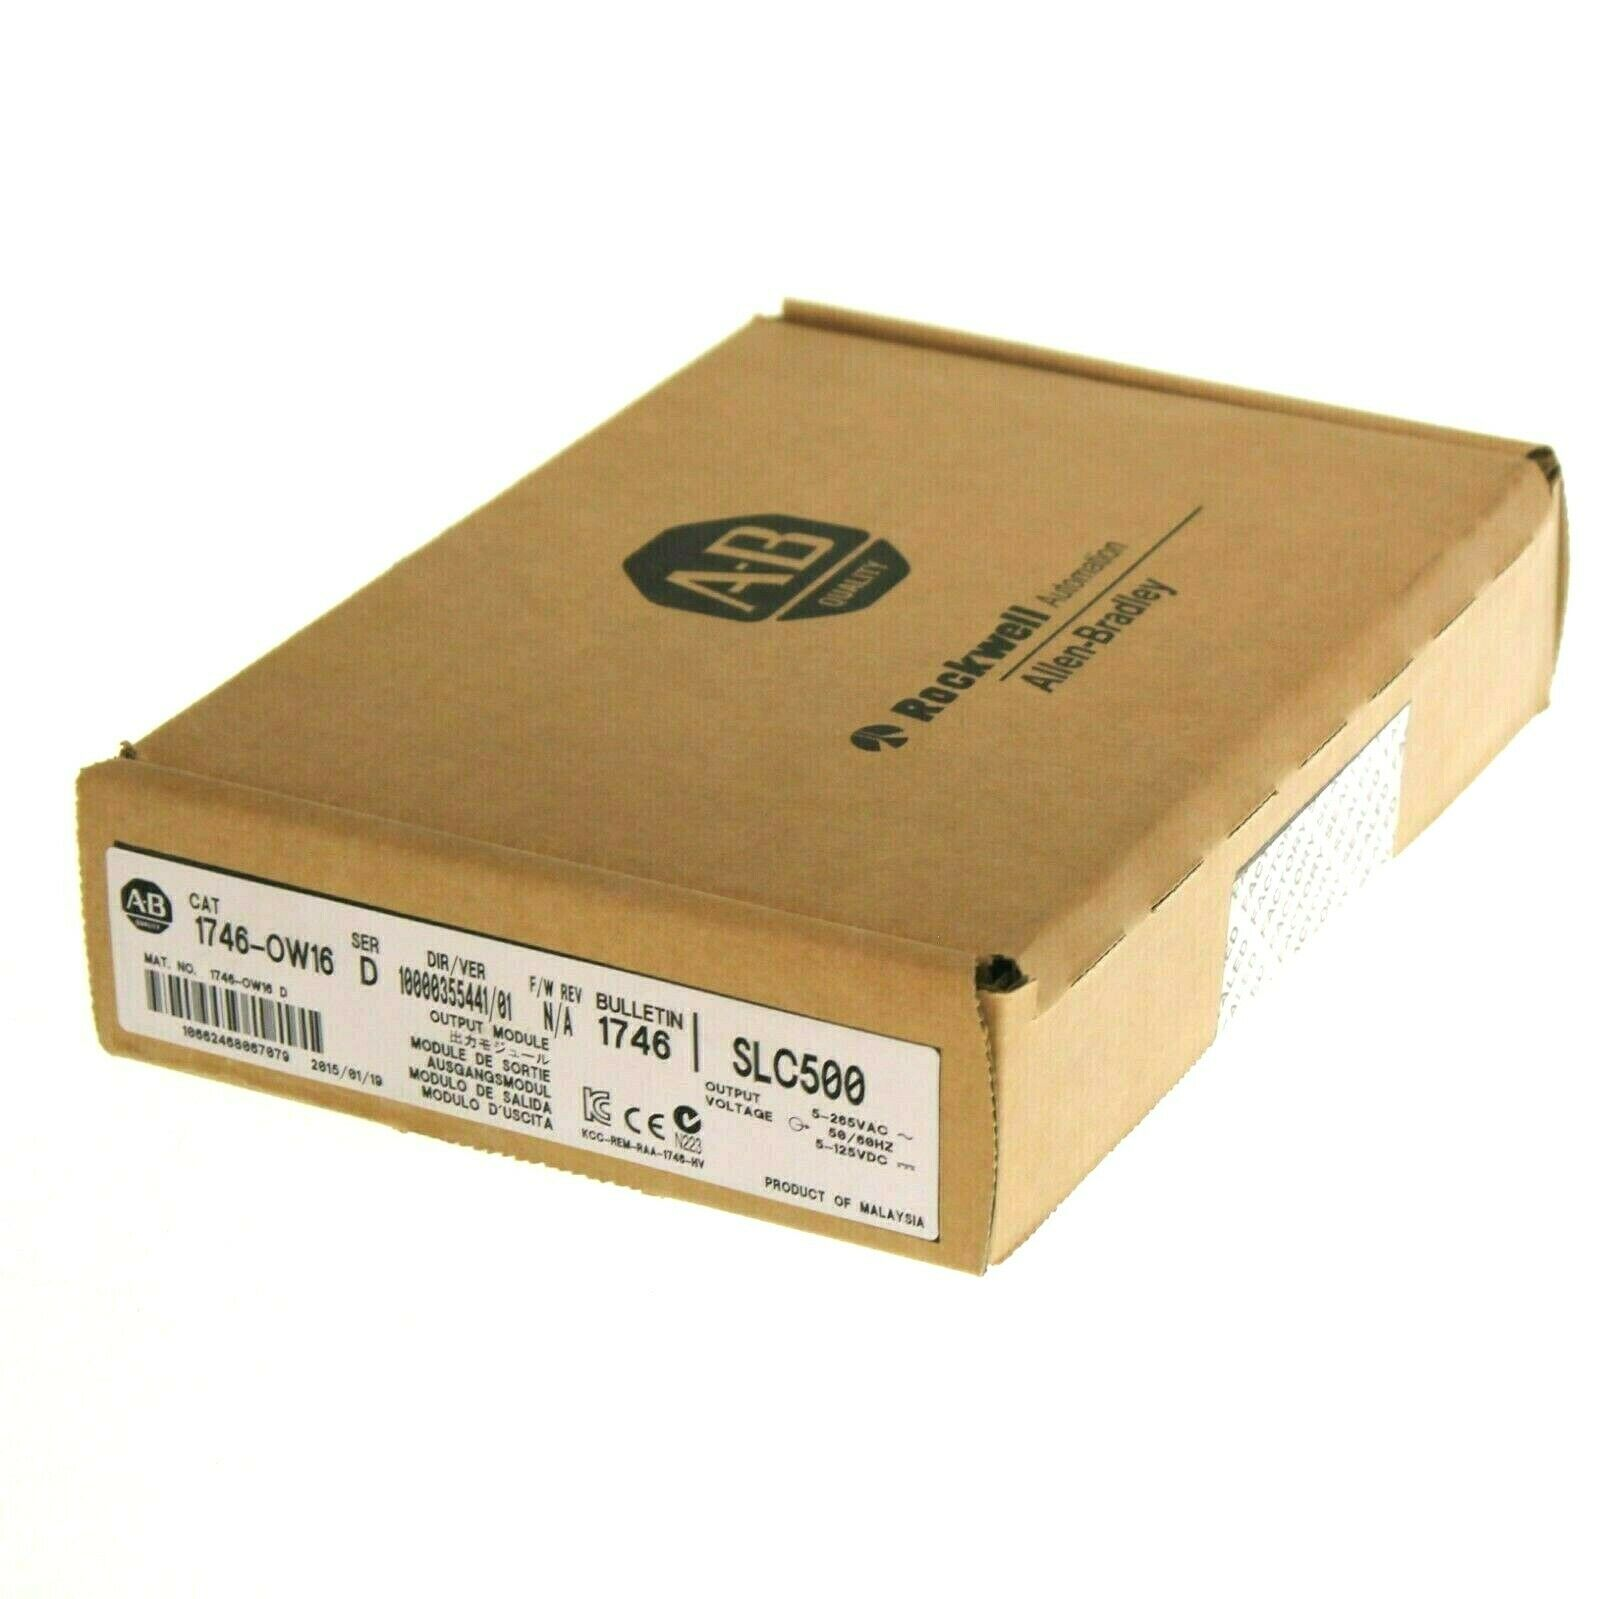 New Sealed Allen Bradley 1746-OW16 /D SLC 500 16-Point Relay Output Module